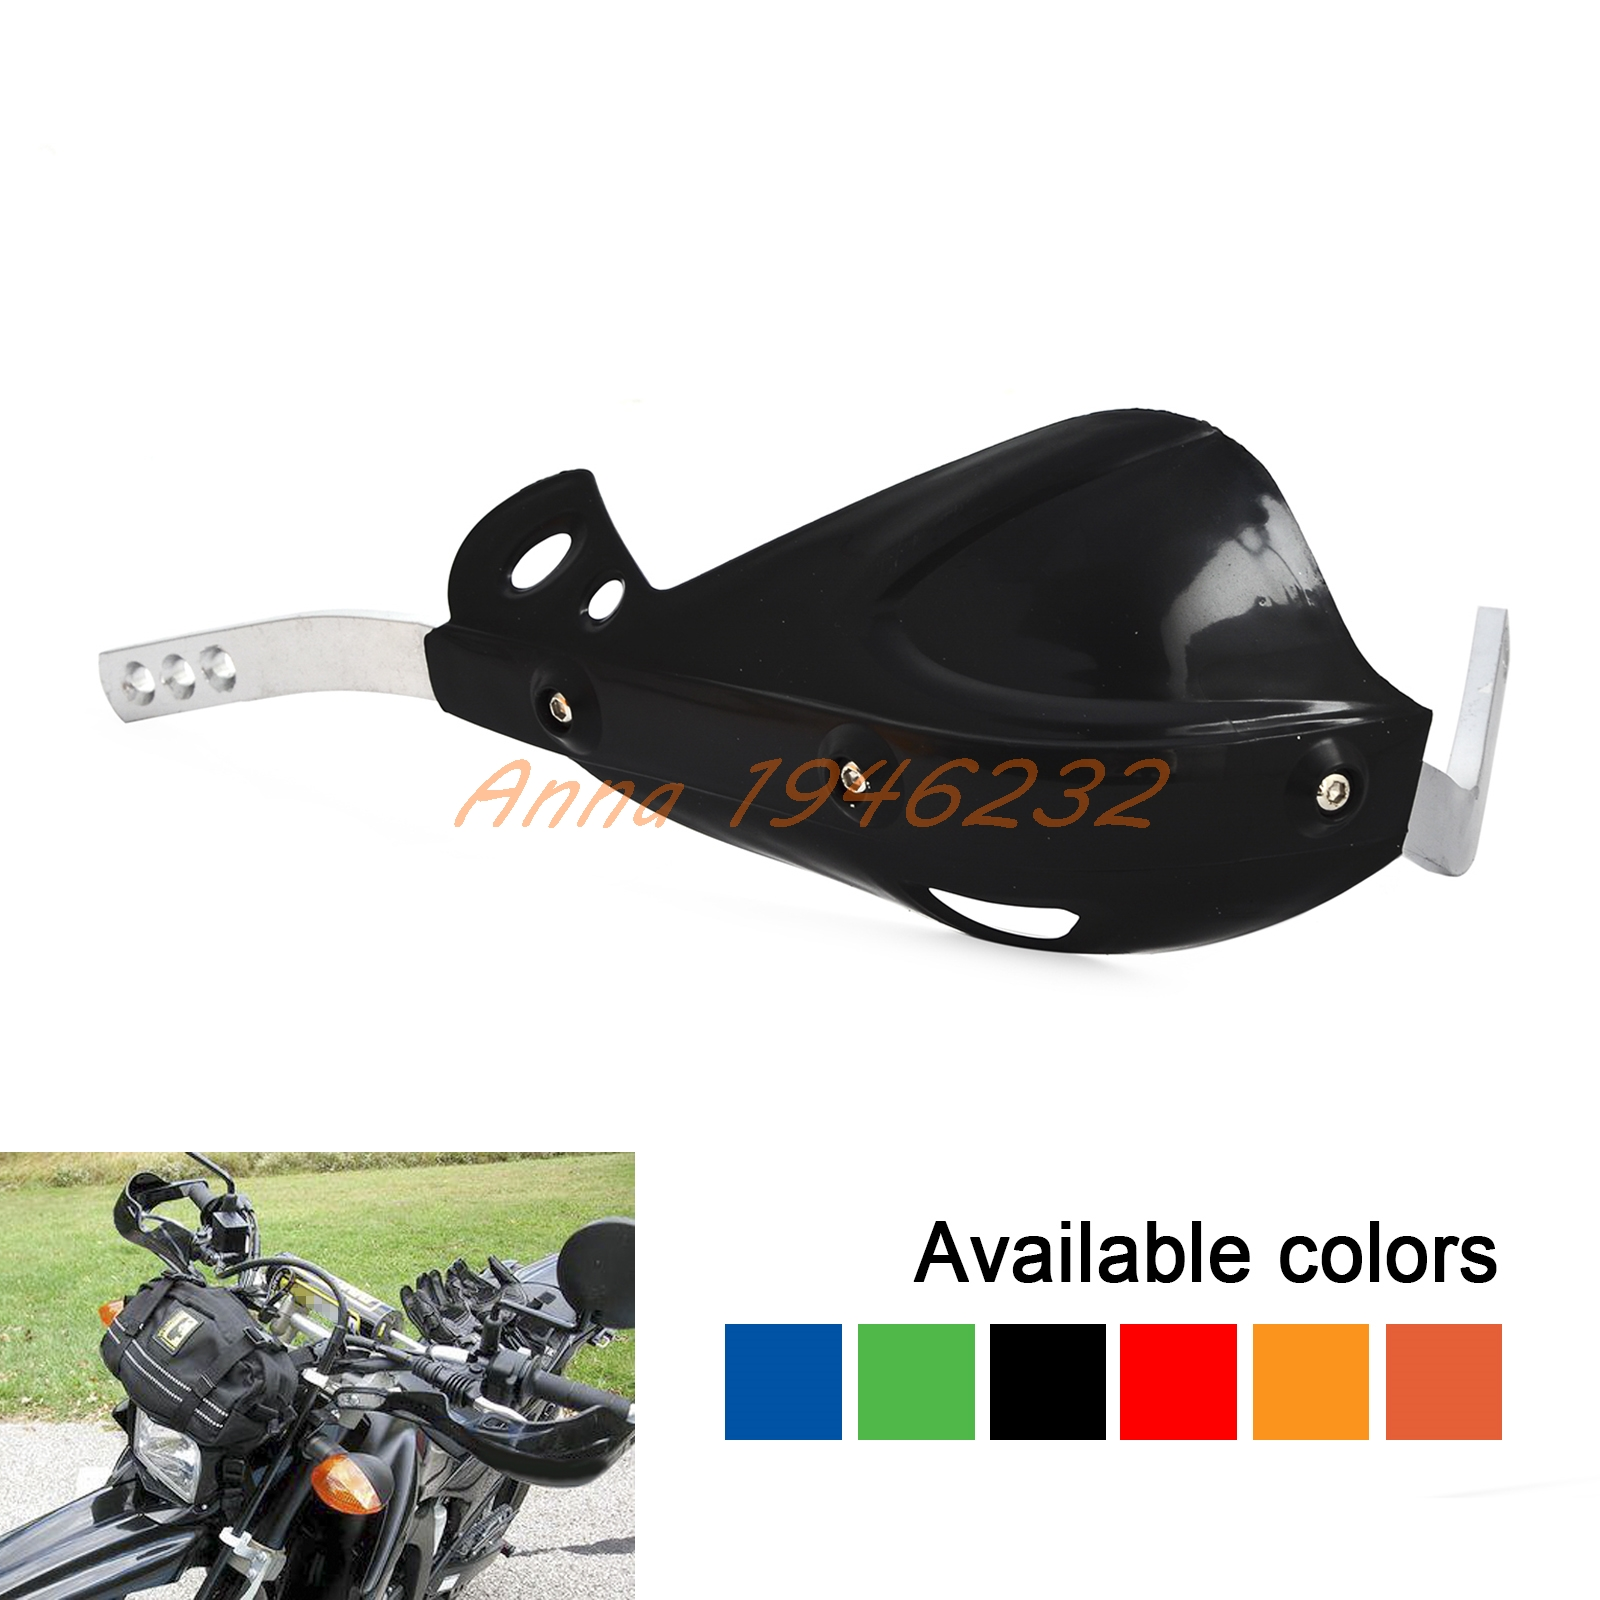 7 8 Motorcycle Dirt Bike ATV Brush Bar Hand Guard Handguard Protector For Honda Kawasai KTM